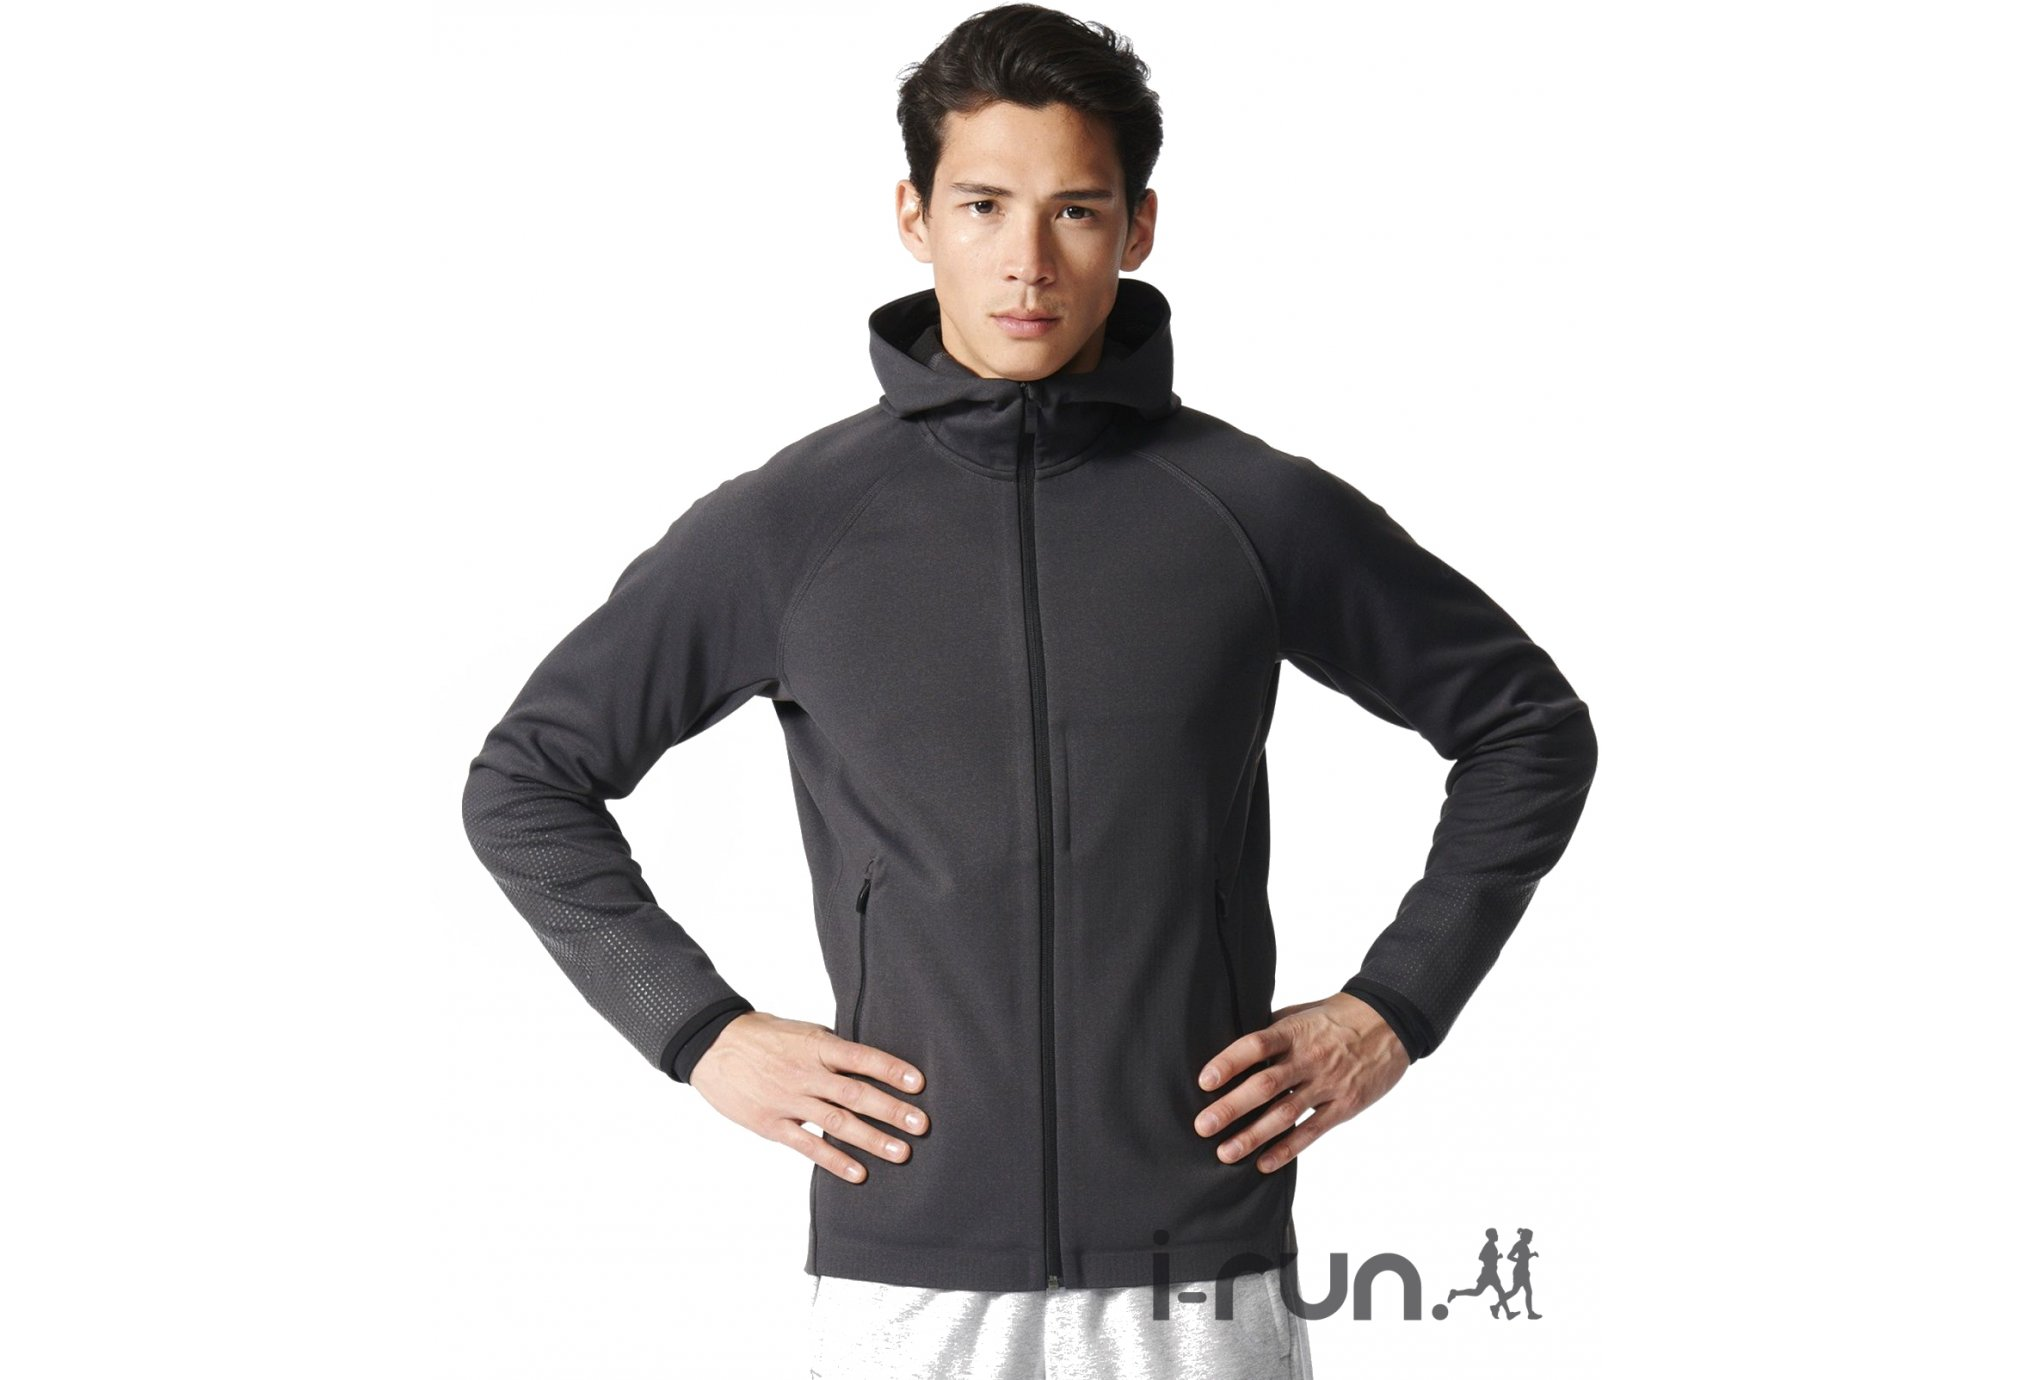 Adidas Climaheat capsule m vêtement running homme